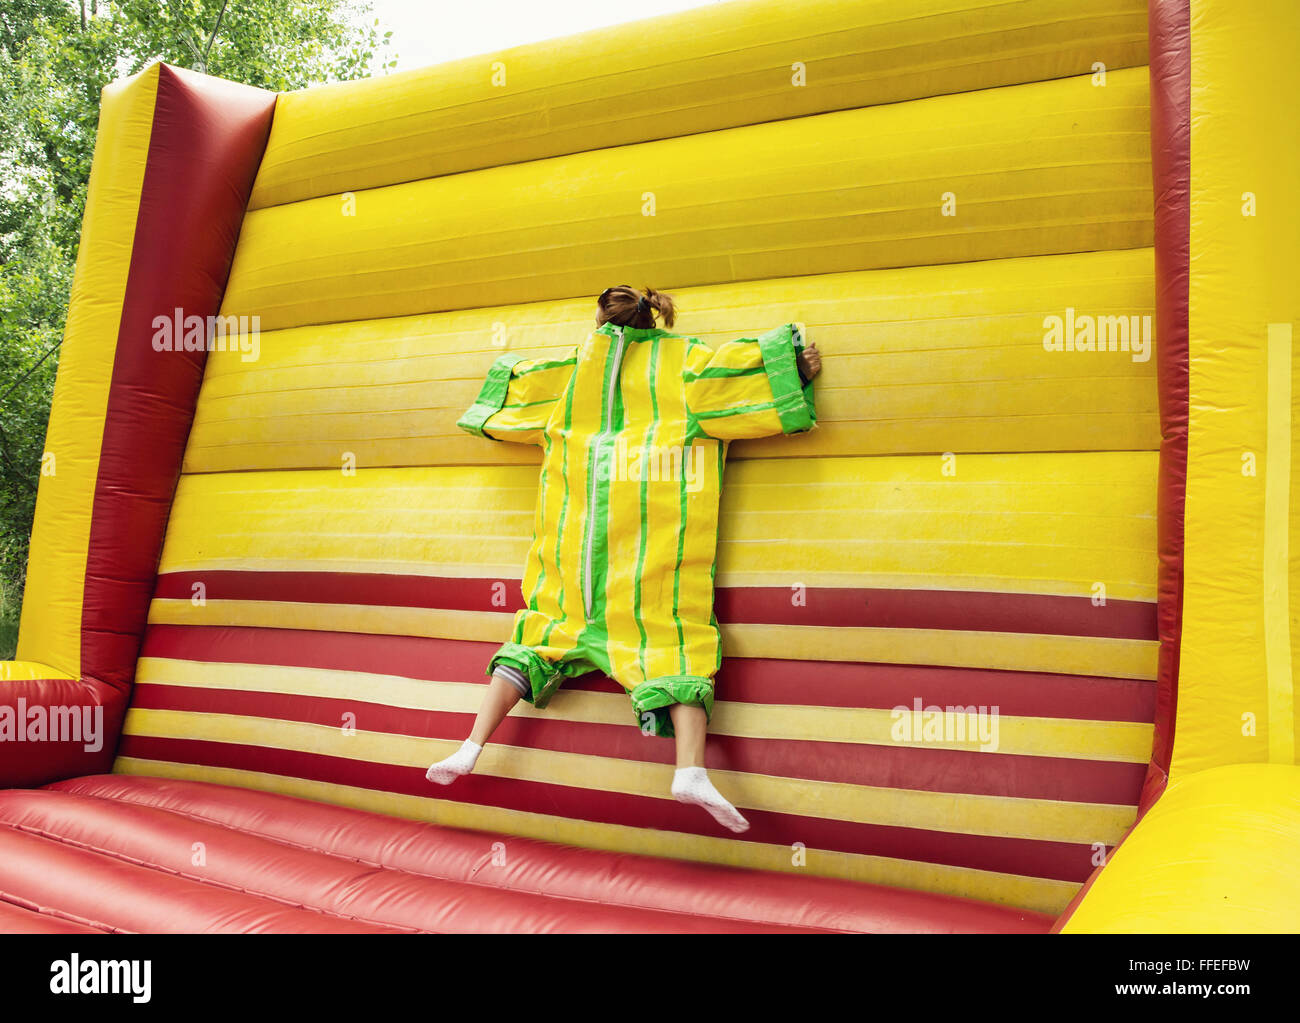 Young woman in plastic dress in a bouncy castle imitates a fly on velcro wall. Inflatable attraction. Leisure activity. - Stock Image